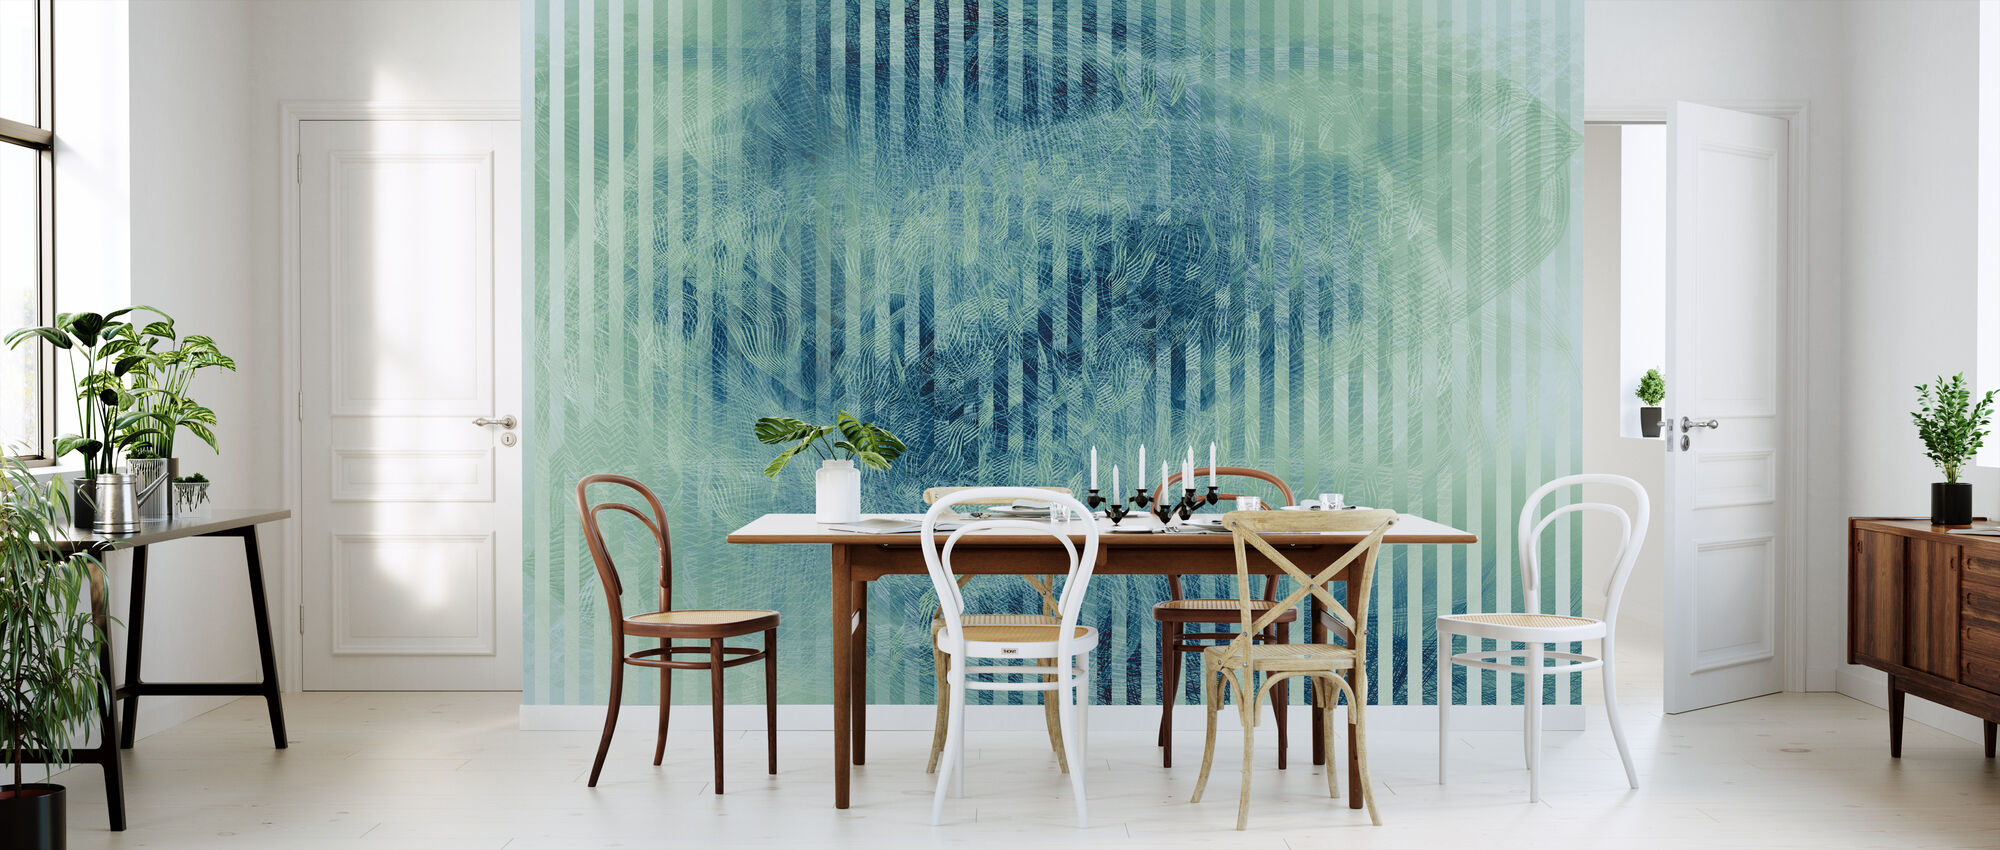 Liquid Lines and Stripes - Green Blue - Wallpaper - Kitchen